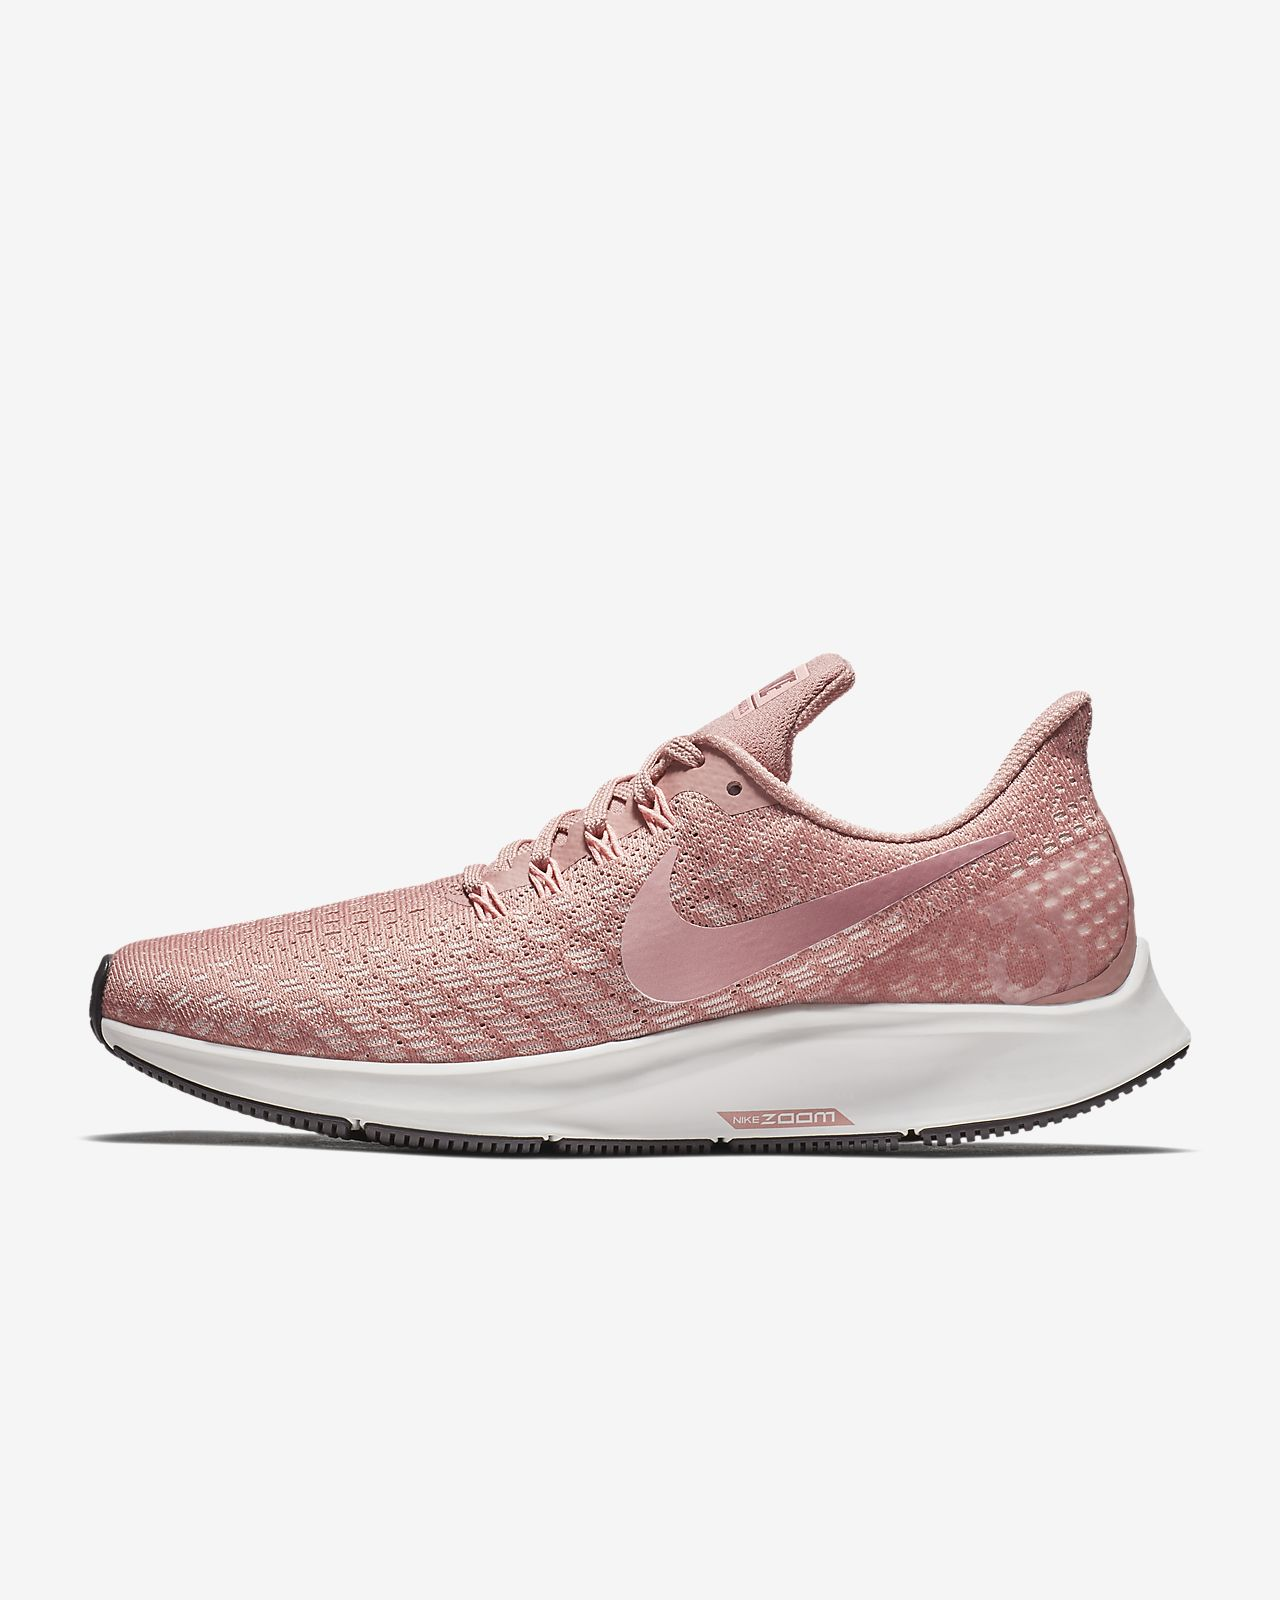 new styles 542fe 38232 Womens Running Shoe. Nike Air Zoom Pegasus 35